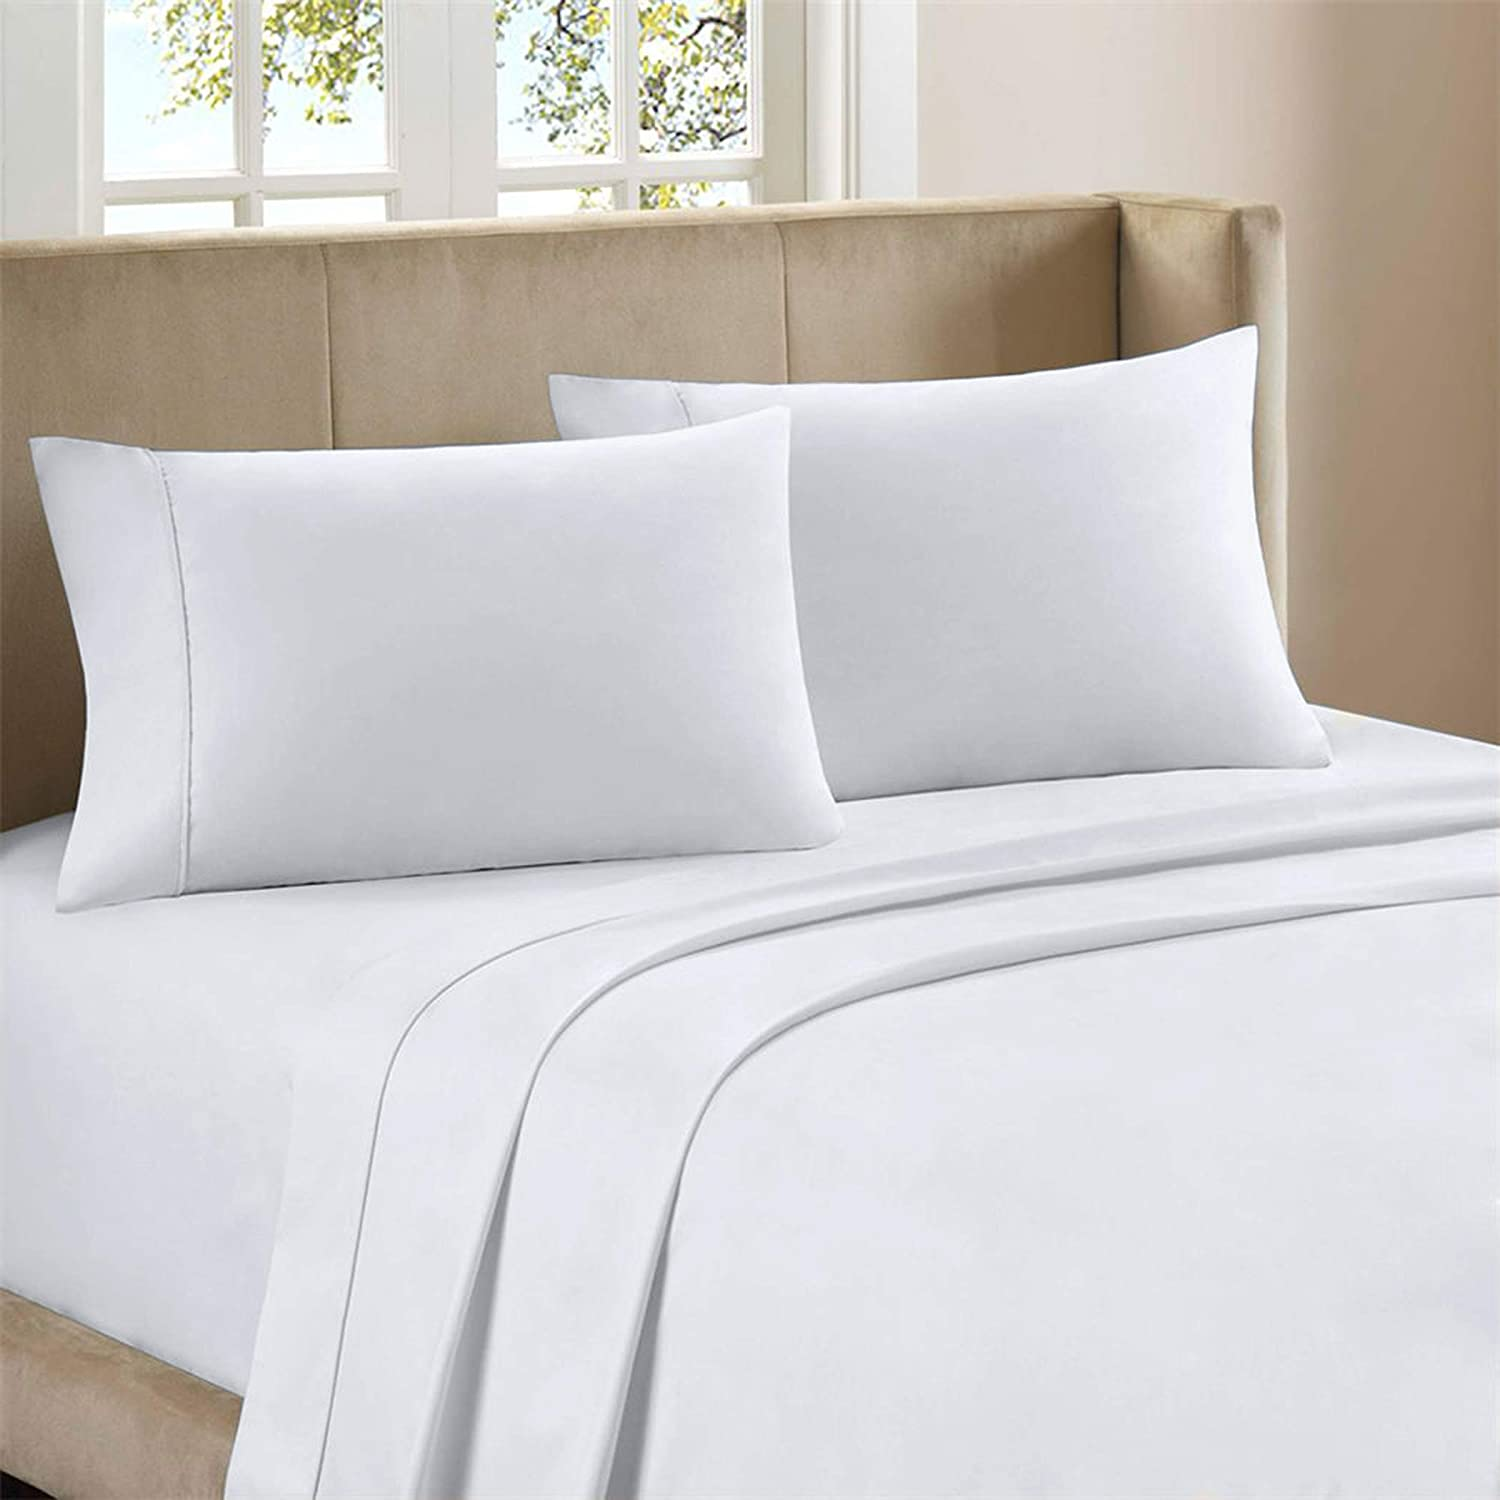 """Premium 400-Thread-Count 100% Cotton 4 Piece Ultimate Percale Bed Sheet Set, White King Sheets, Moisture Wicking, Soft Finish, Cool Crisp, Patented Fitted Sheet Fits Upto 18"""" Deep Pocket - Purity Home"""